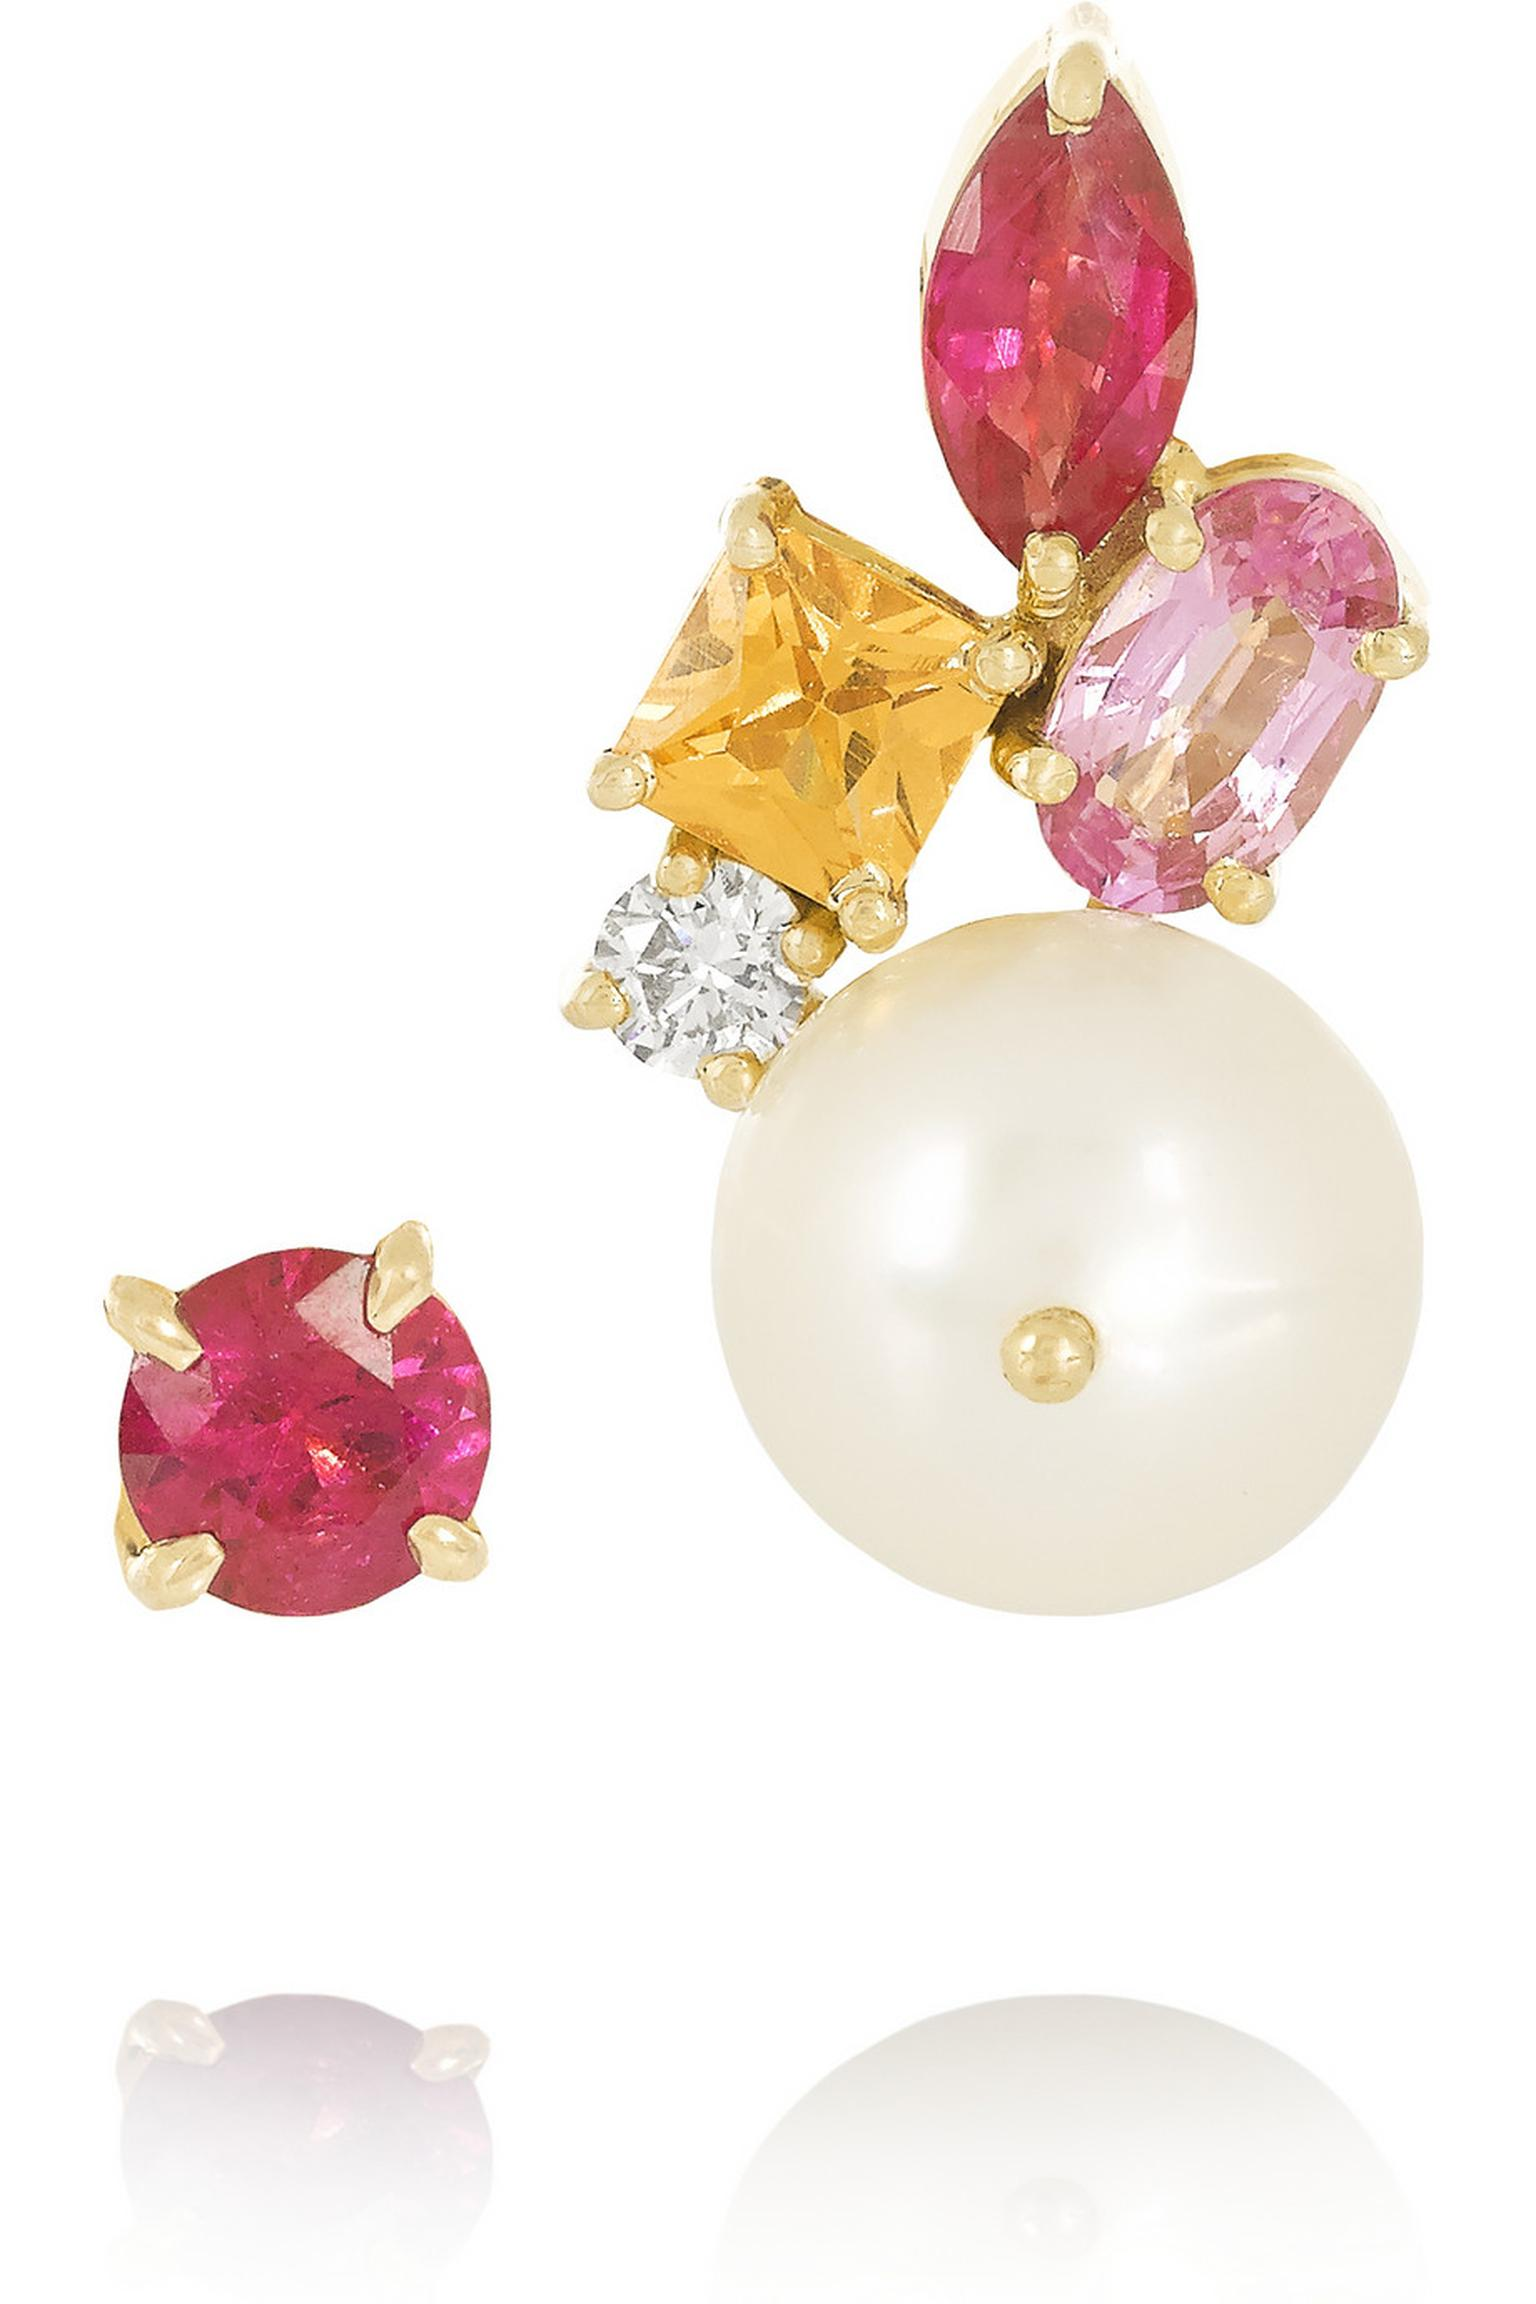 Holly Dyment mismatched pearl earrings with rubies, a mandarin garnet, a pink sapphire and a diamond ($2,270).